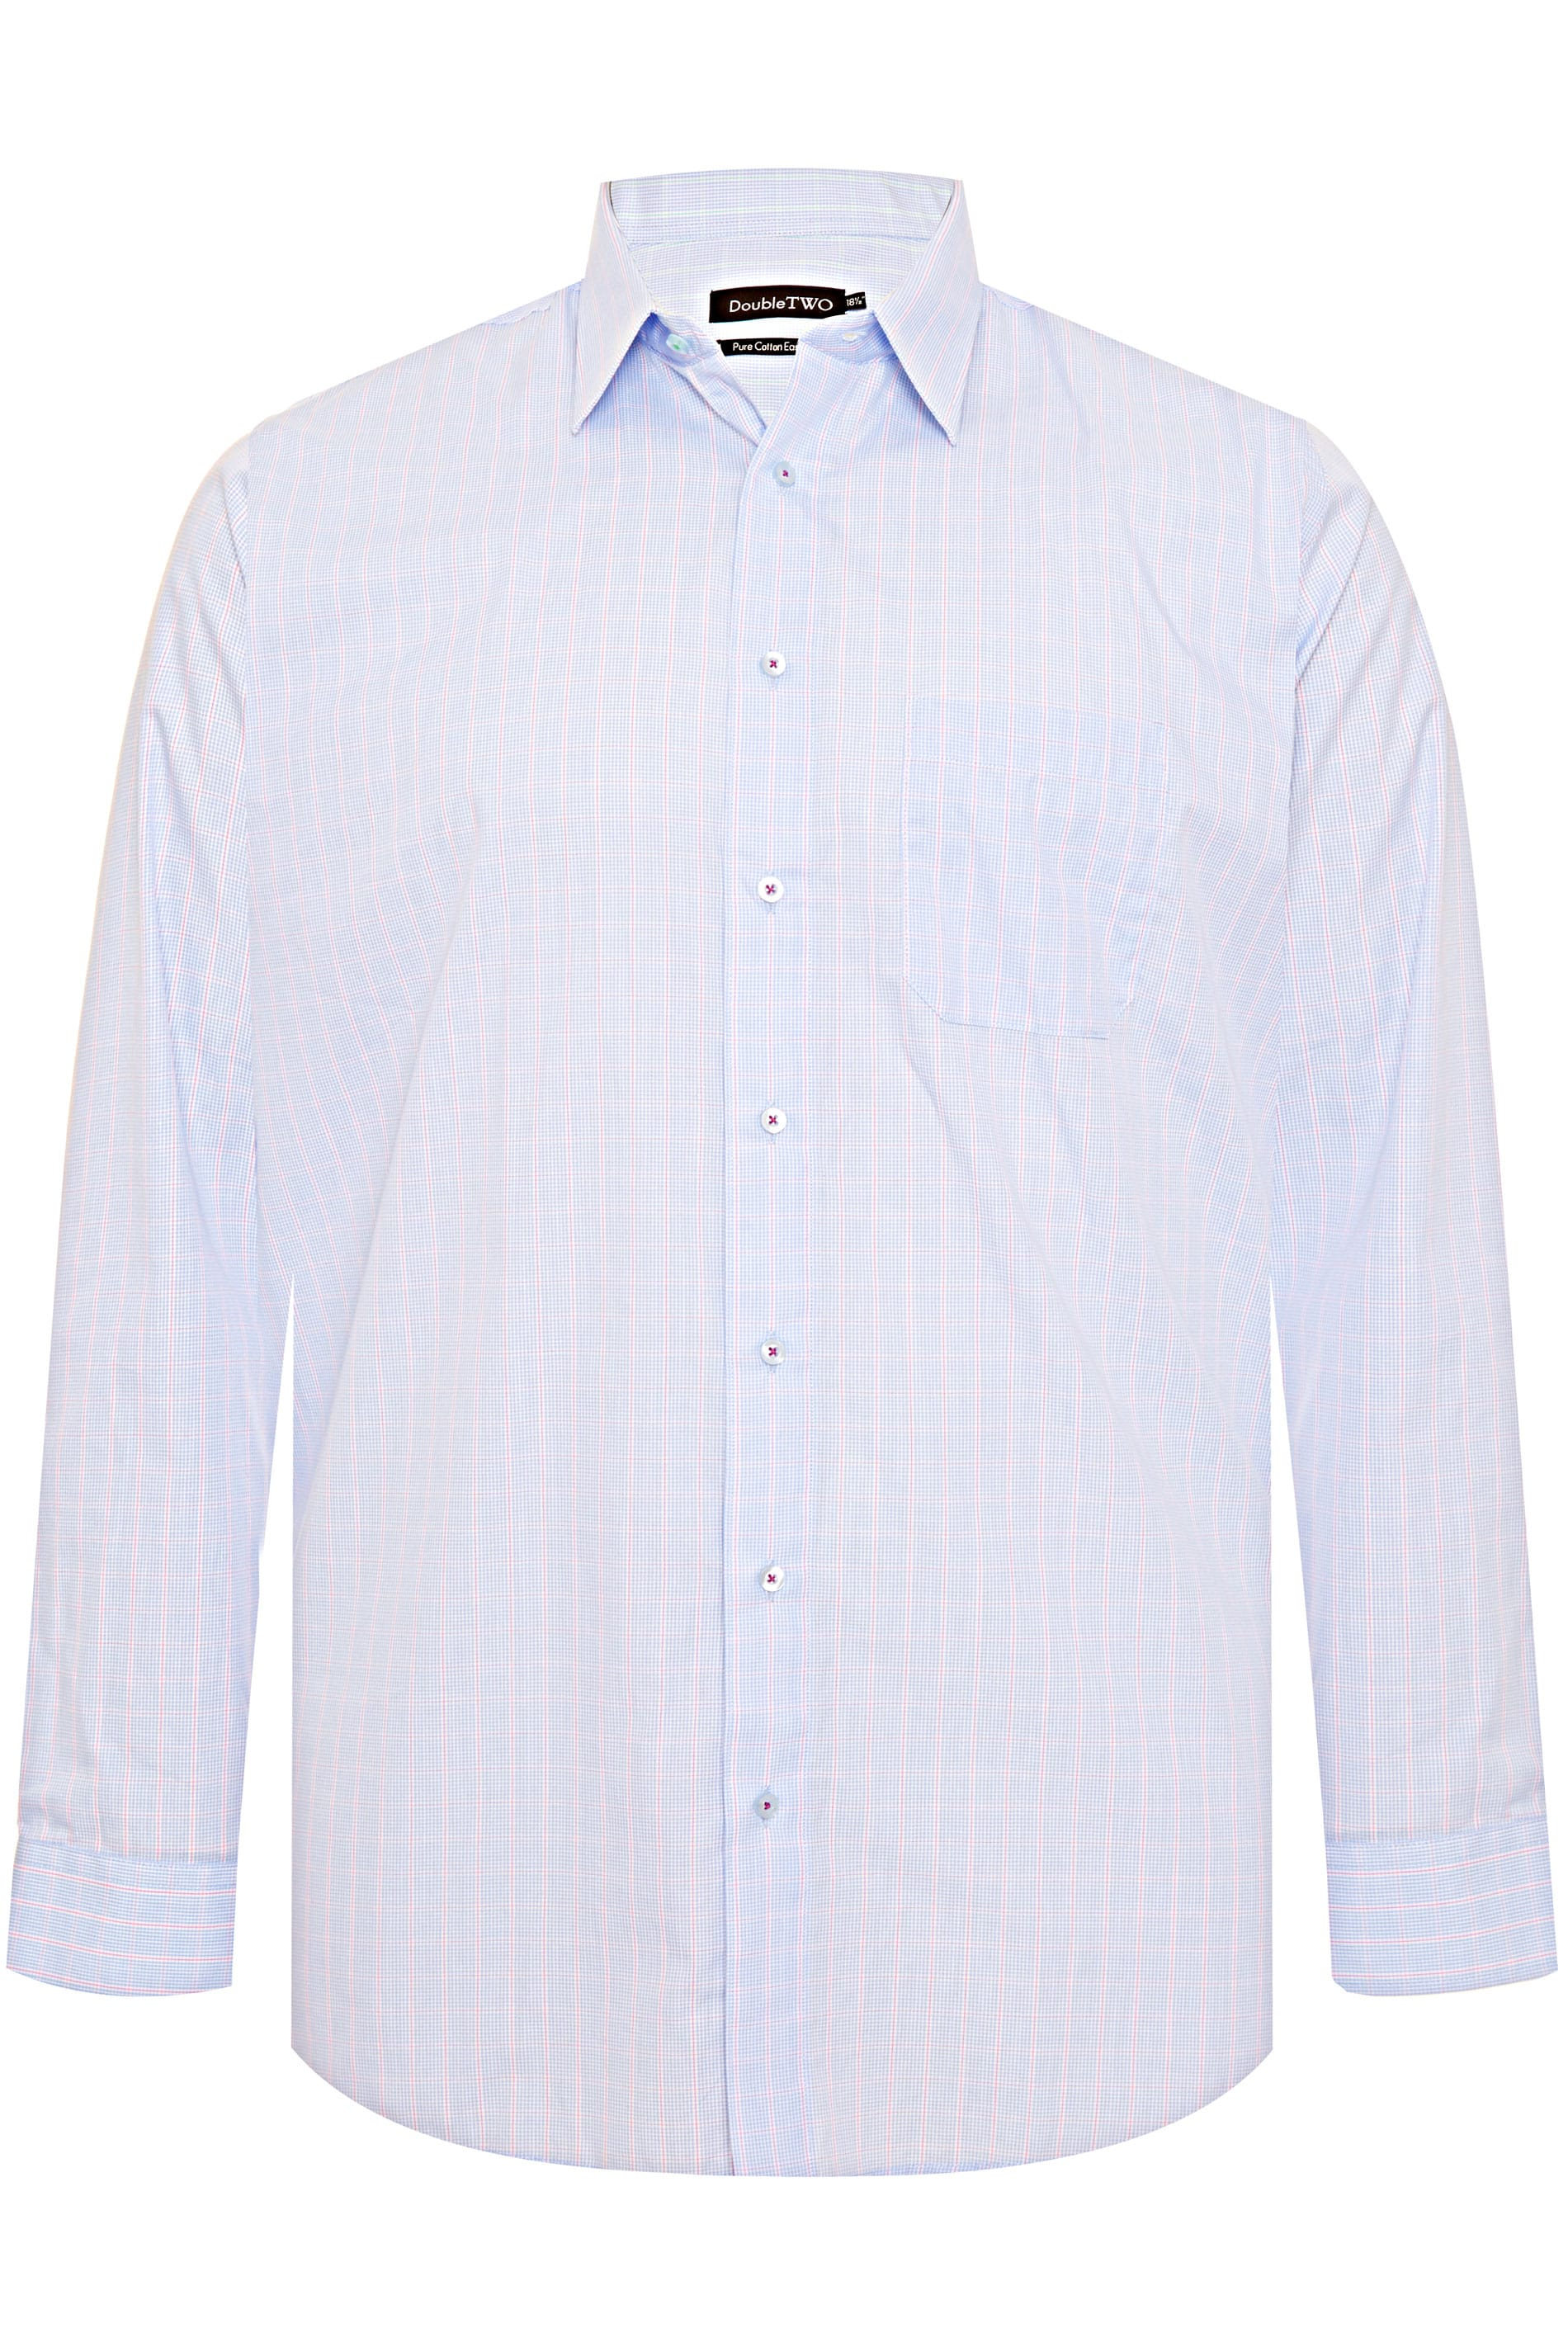 DOUBLE TWO Blue & Red Check Non-Iron Long Sleeve Shirt